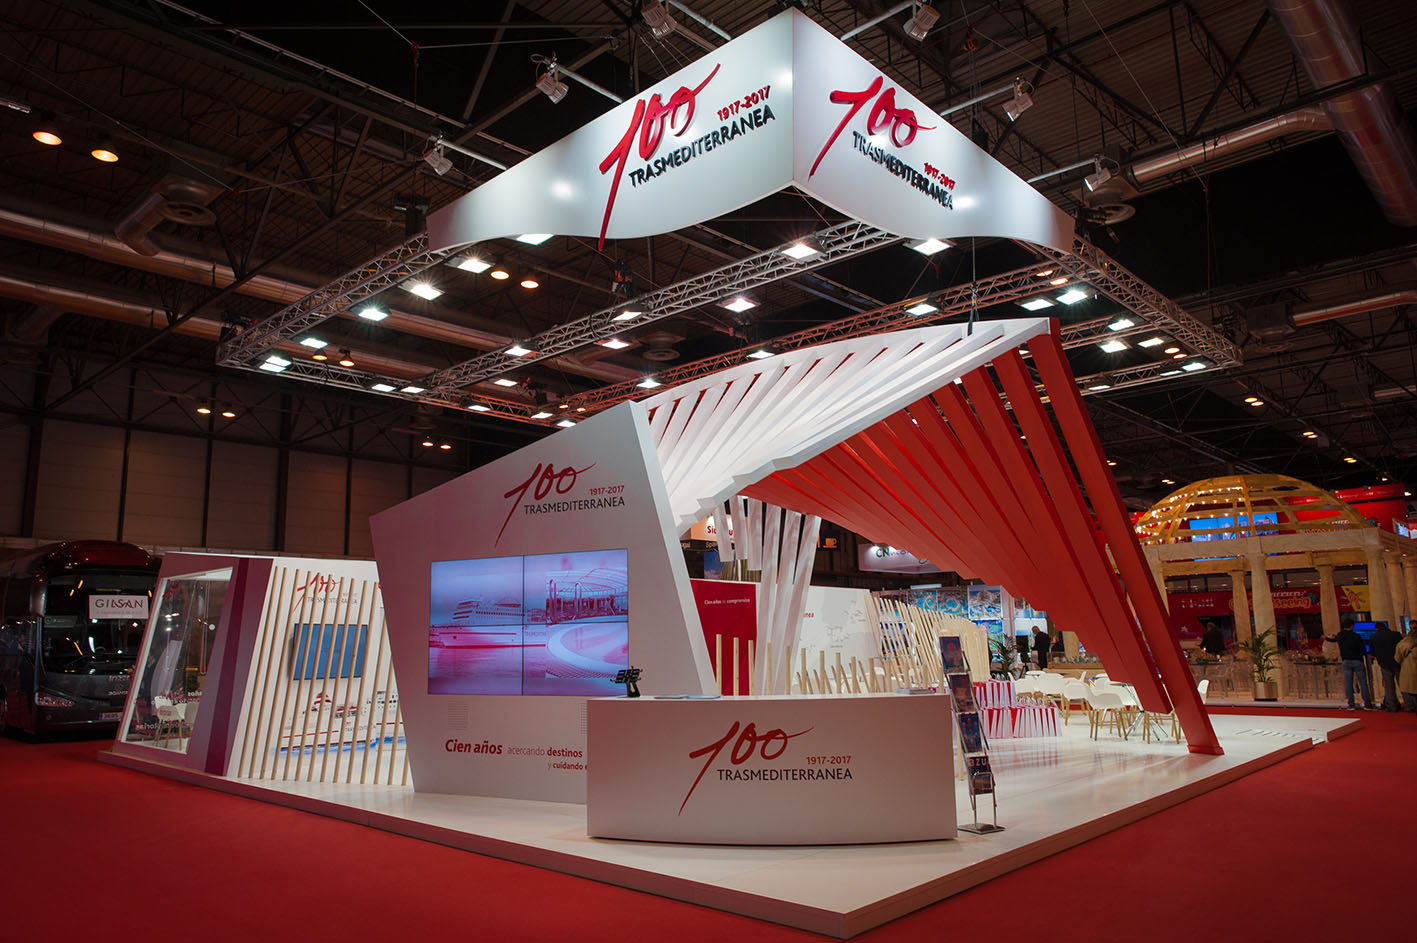 Trasmediterr nea s stand at fitur created by acciona producciones y dise o has been awarded - Stand de diseno ...